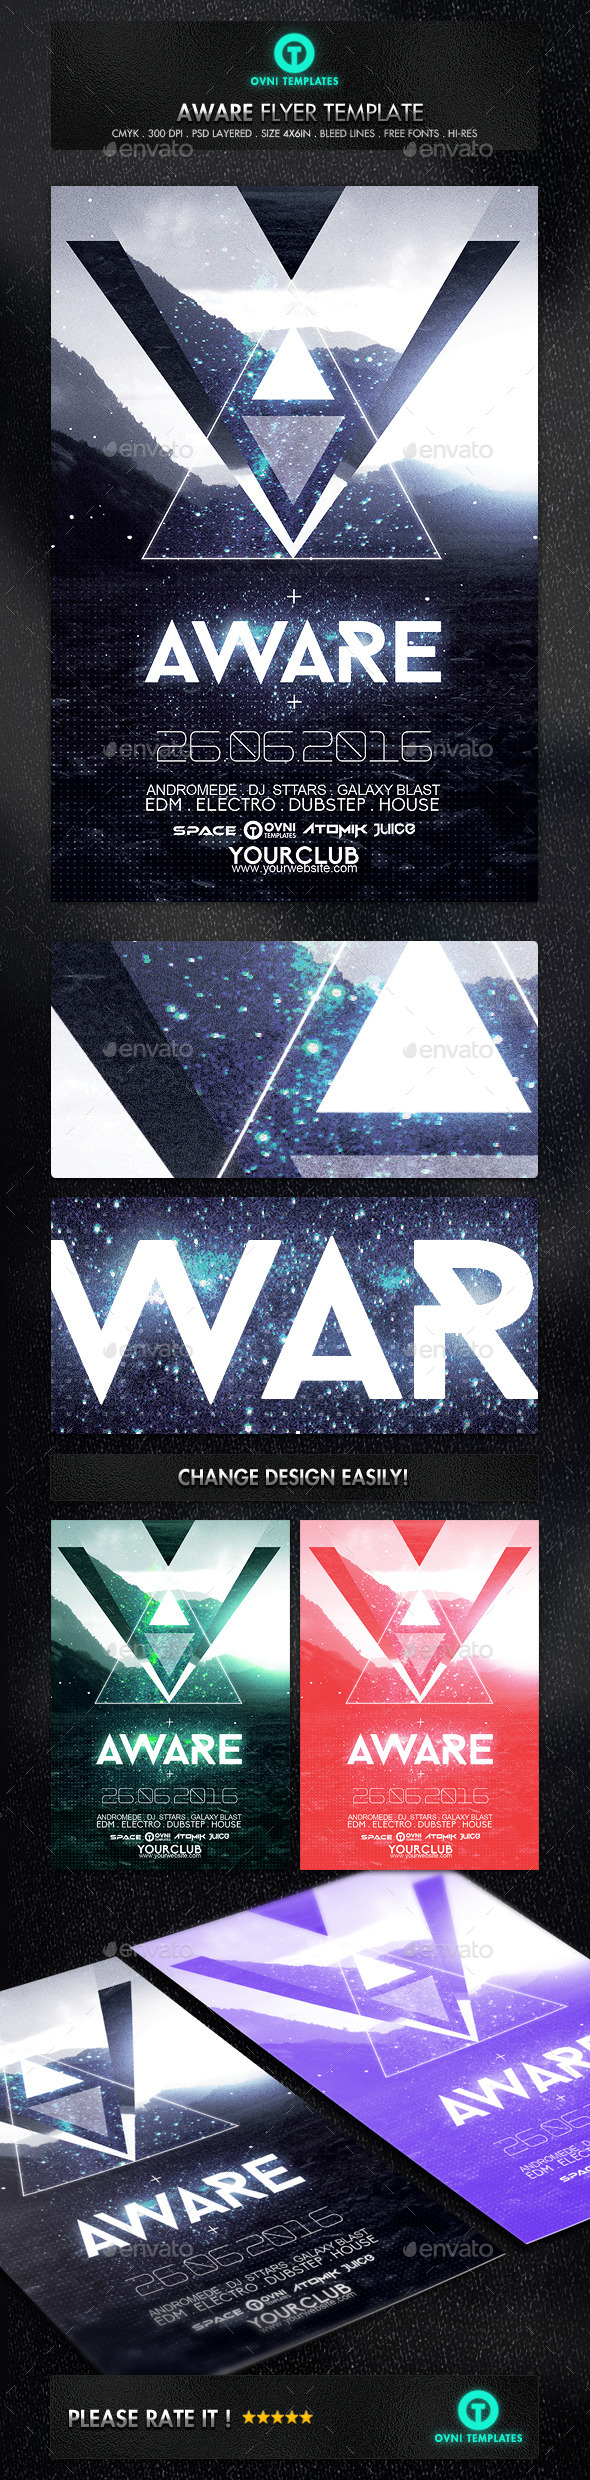 Abstract Futuristic Electro Flyer Psd Template  Download  Https